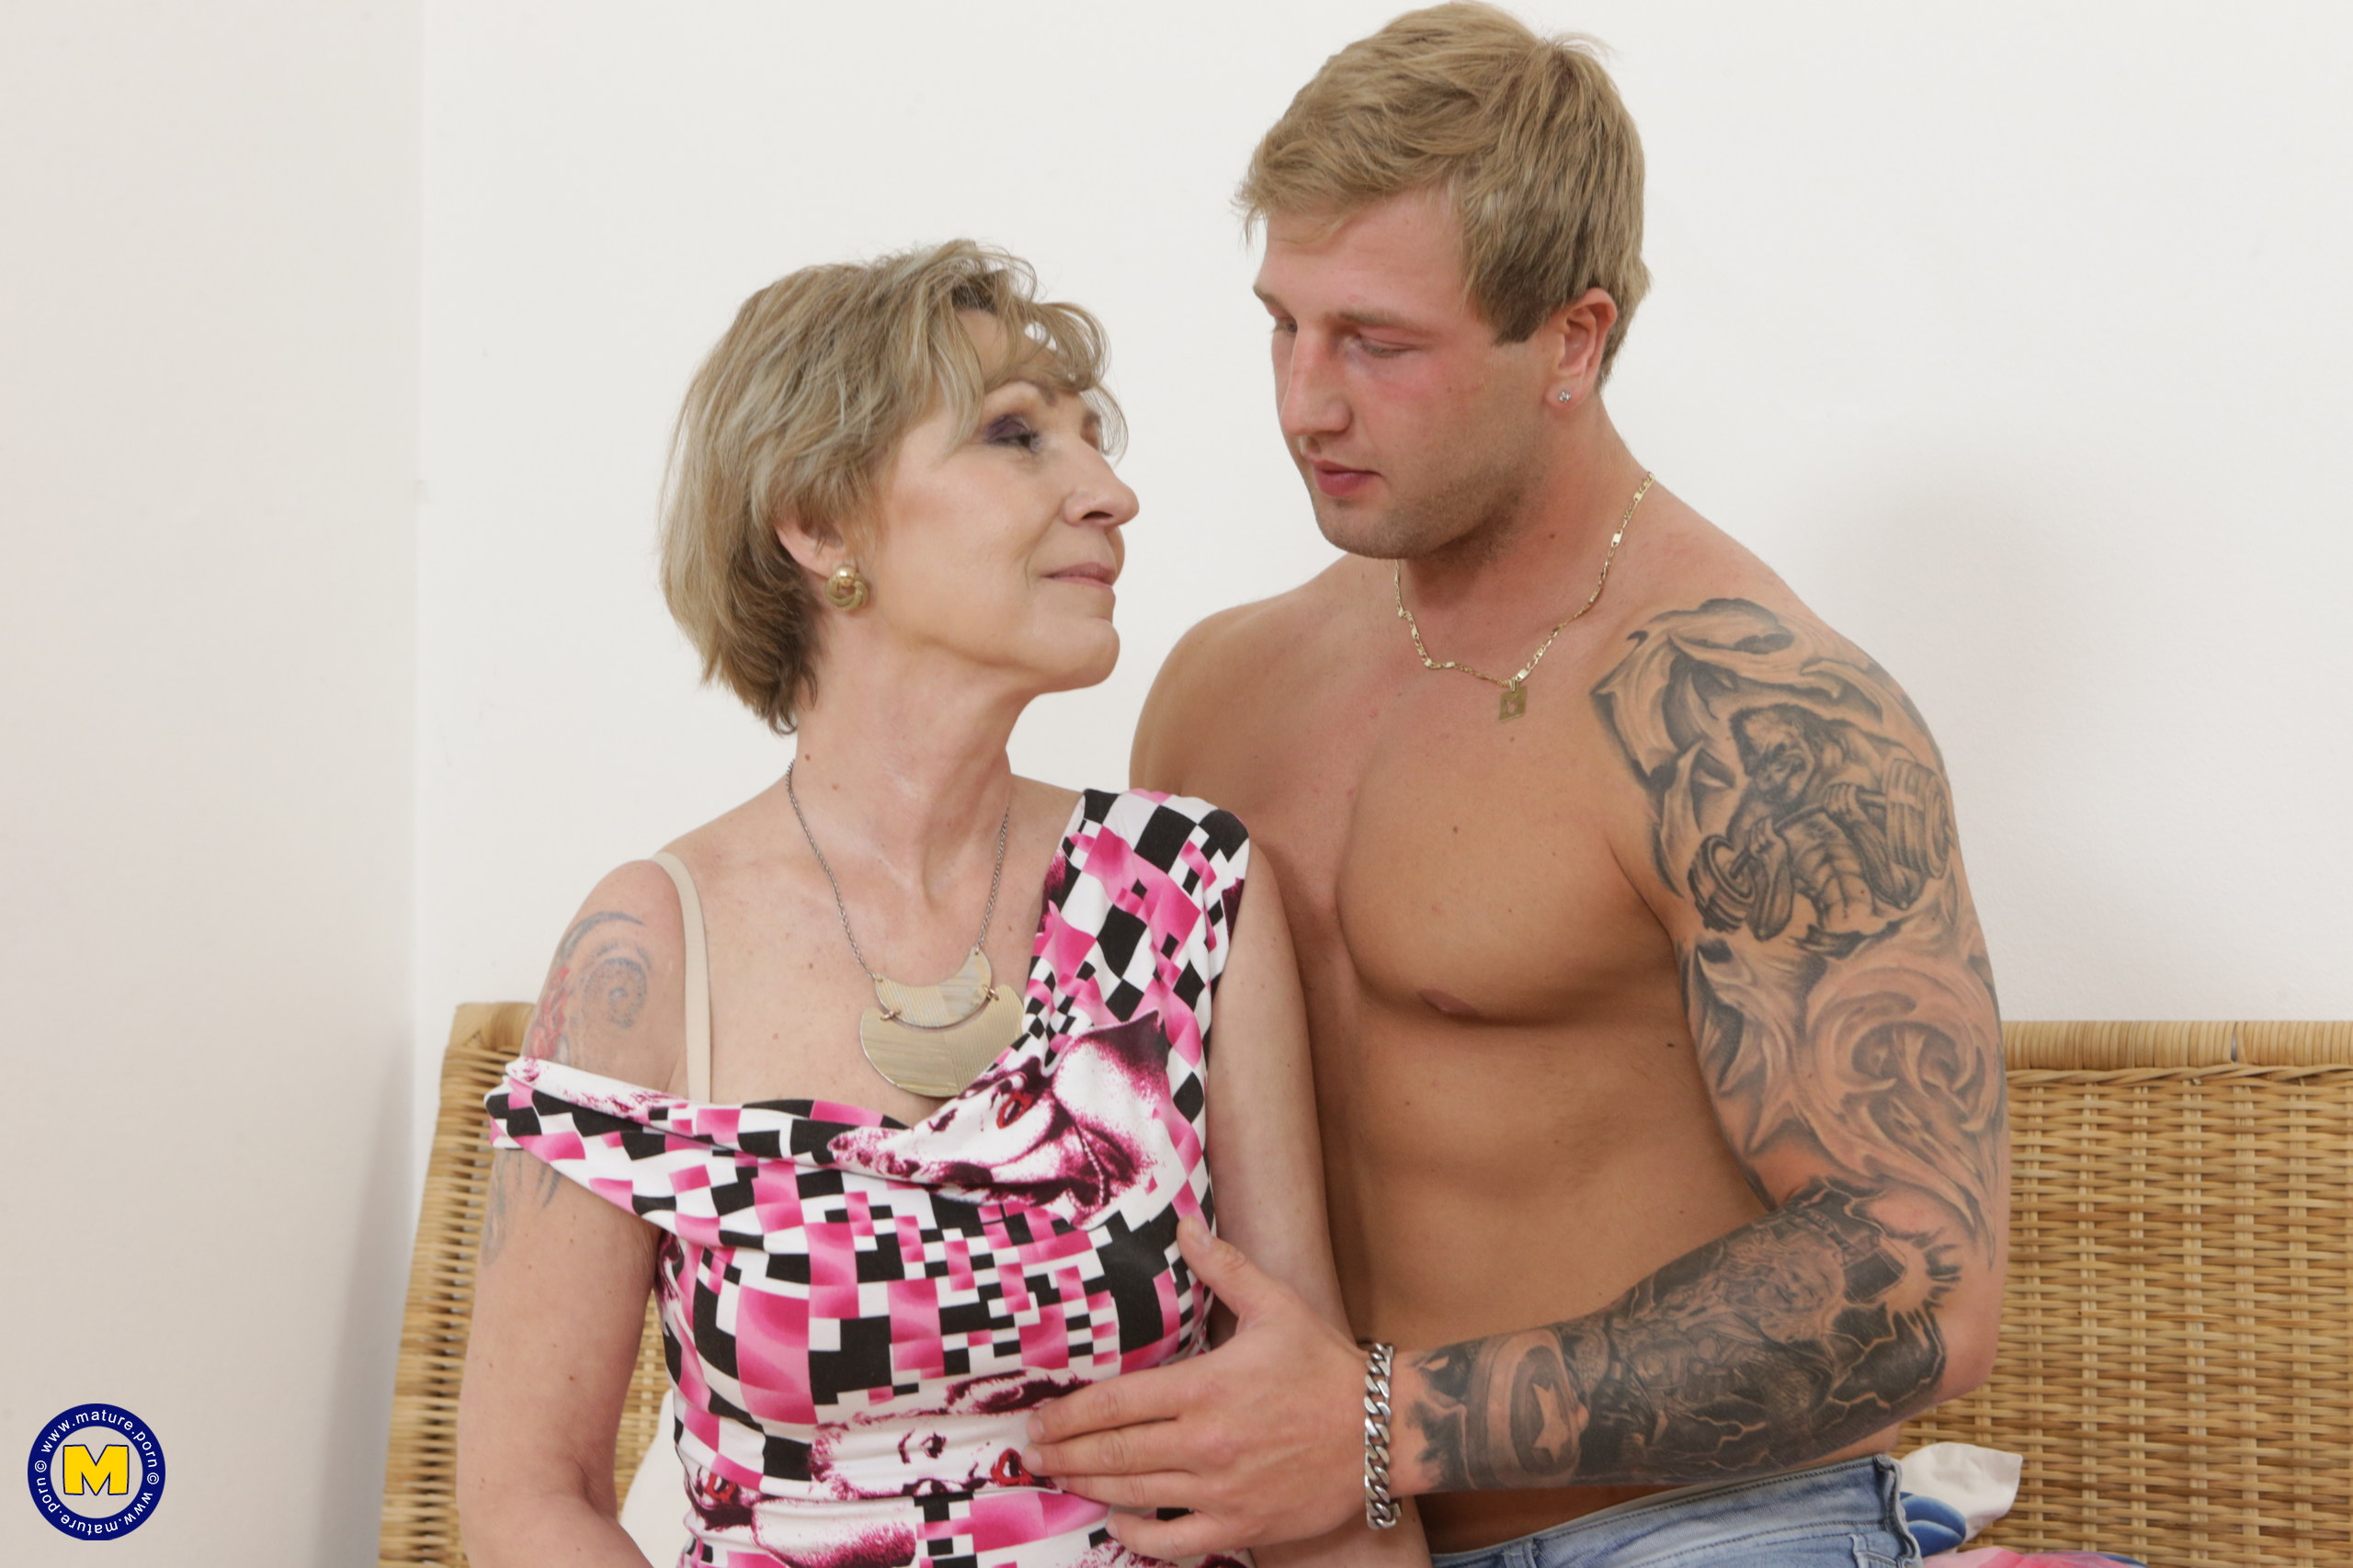 oma is so happy about her new young lover , he can eat her pussy like no other man in her life before #1